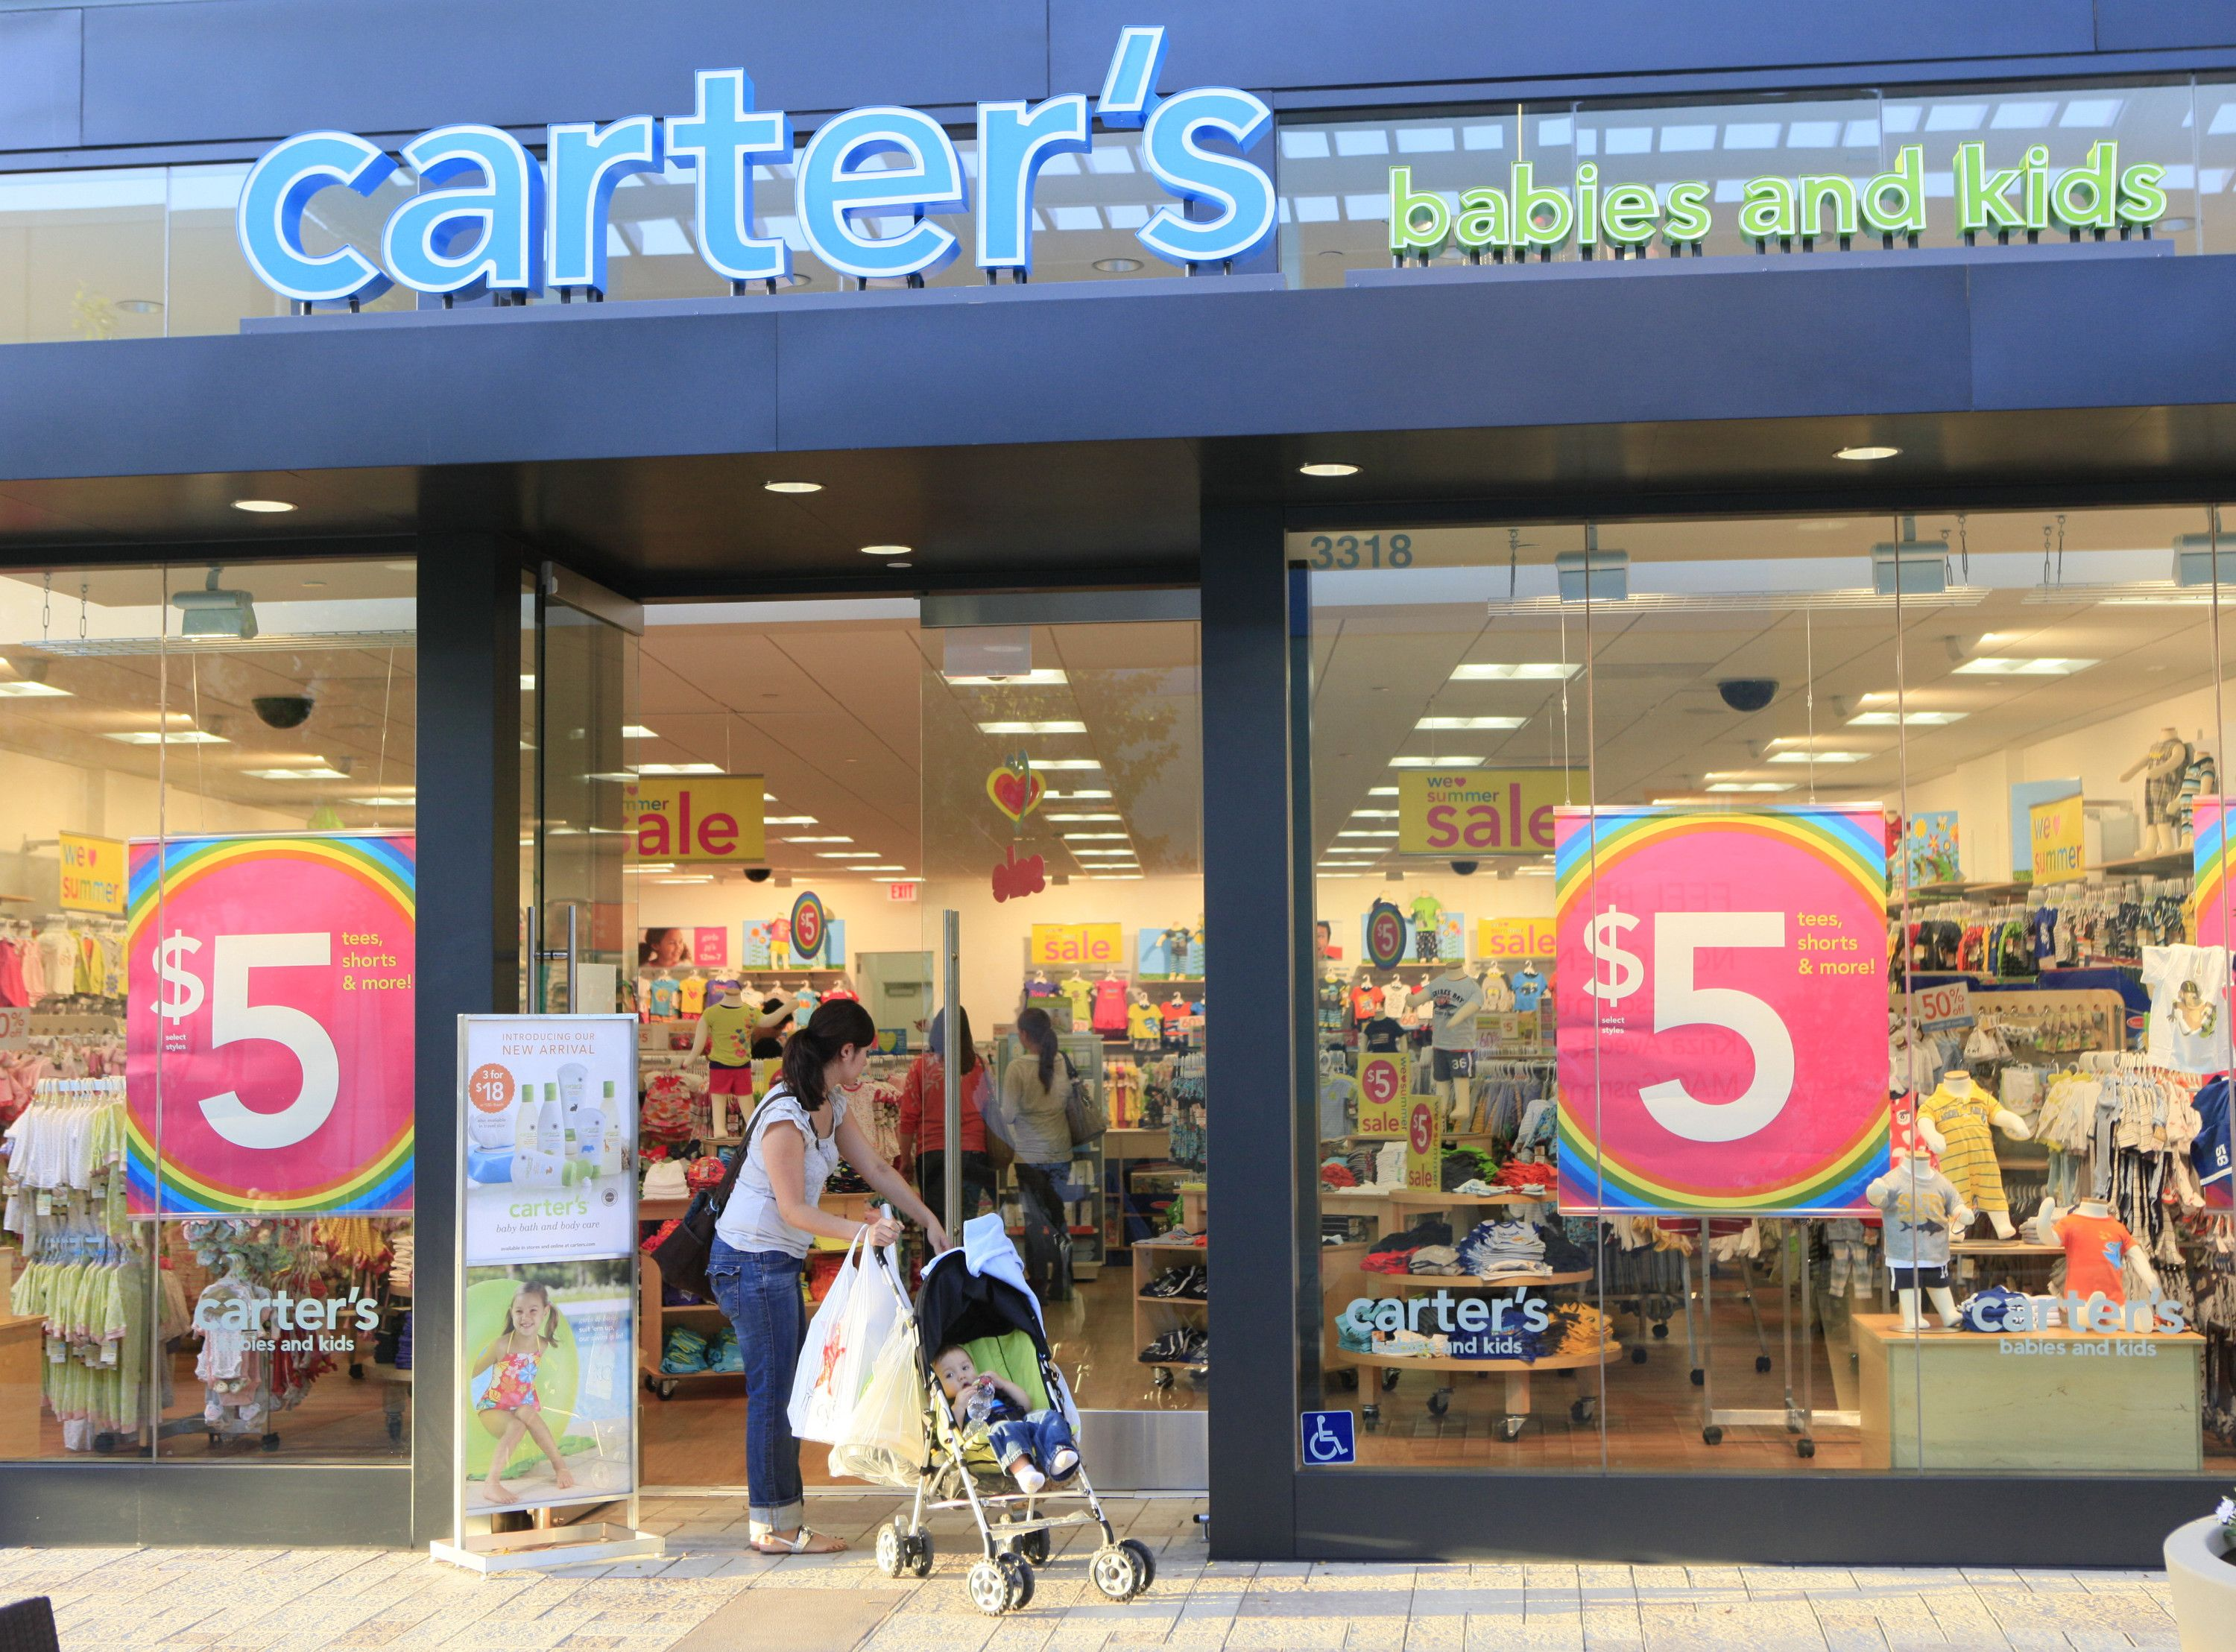 Carters Store Customers At The Carter S Store At The